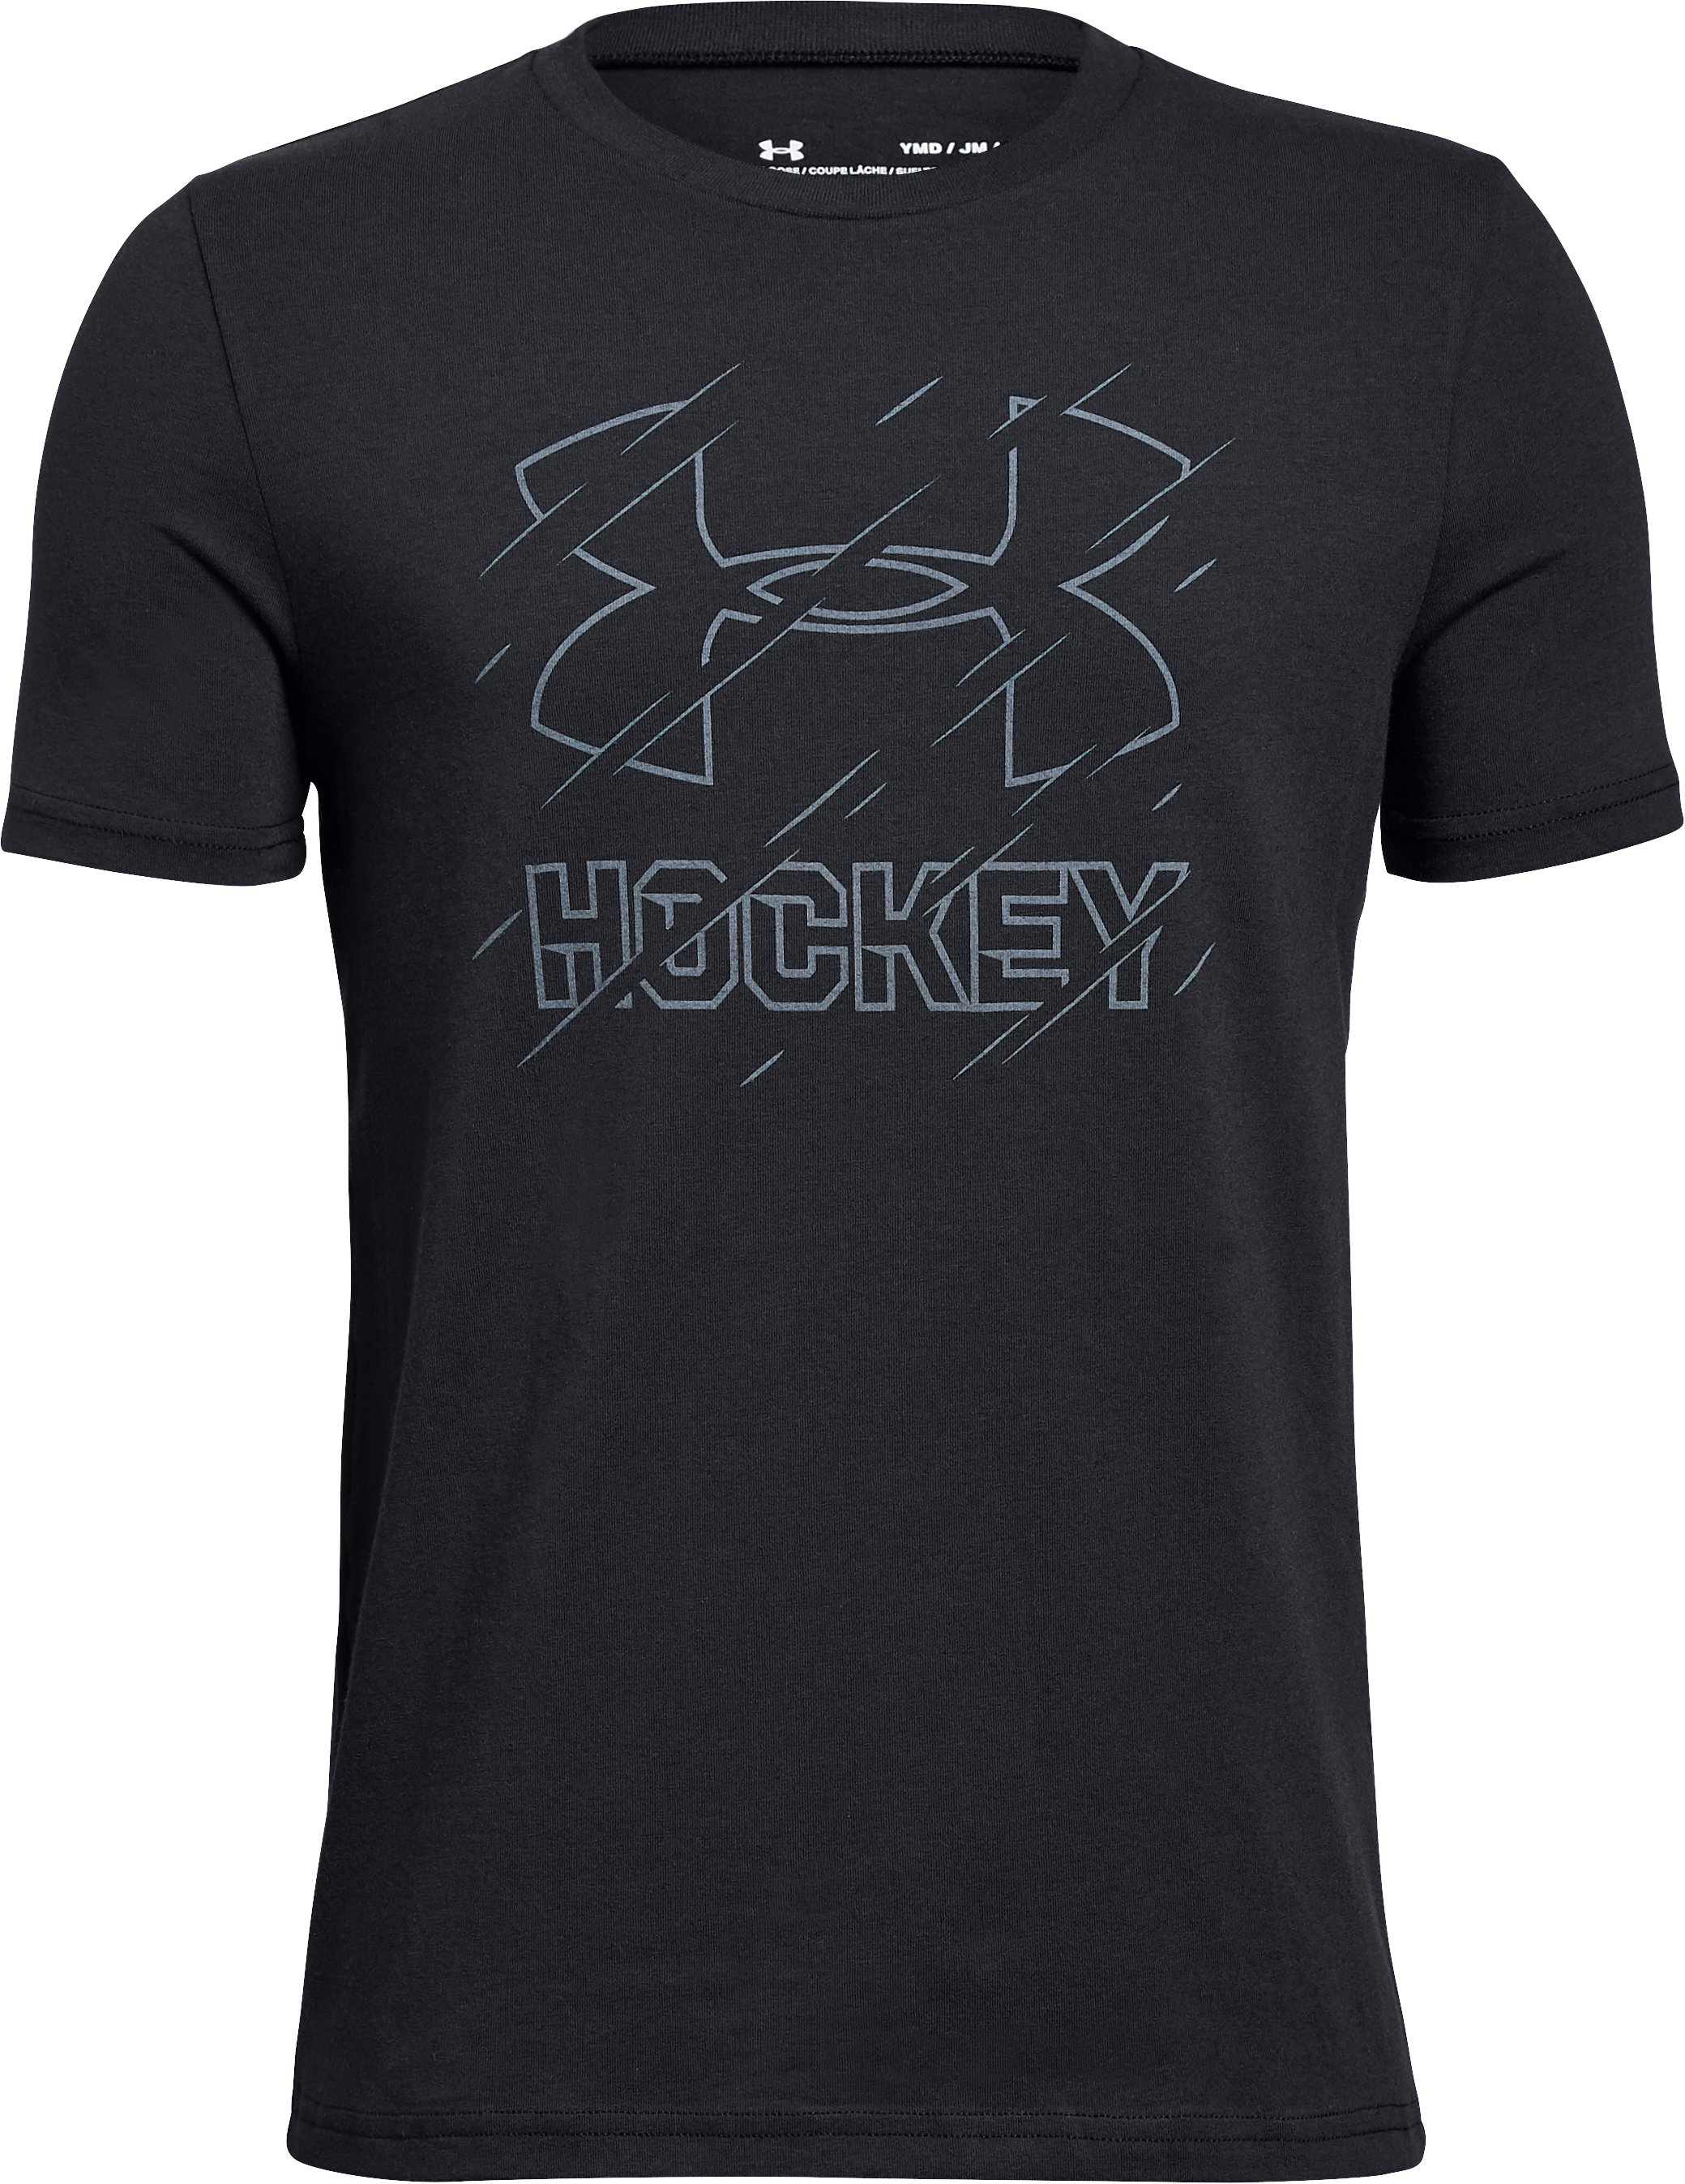 Boys' UA Hockey T-Shirt, Black ,